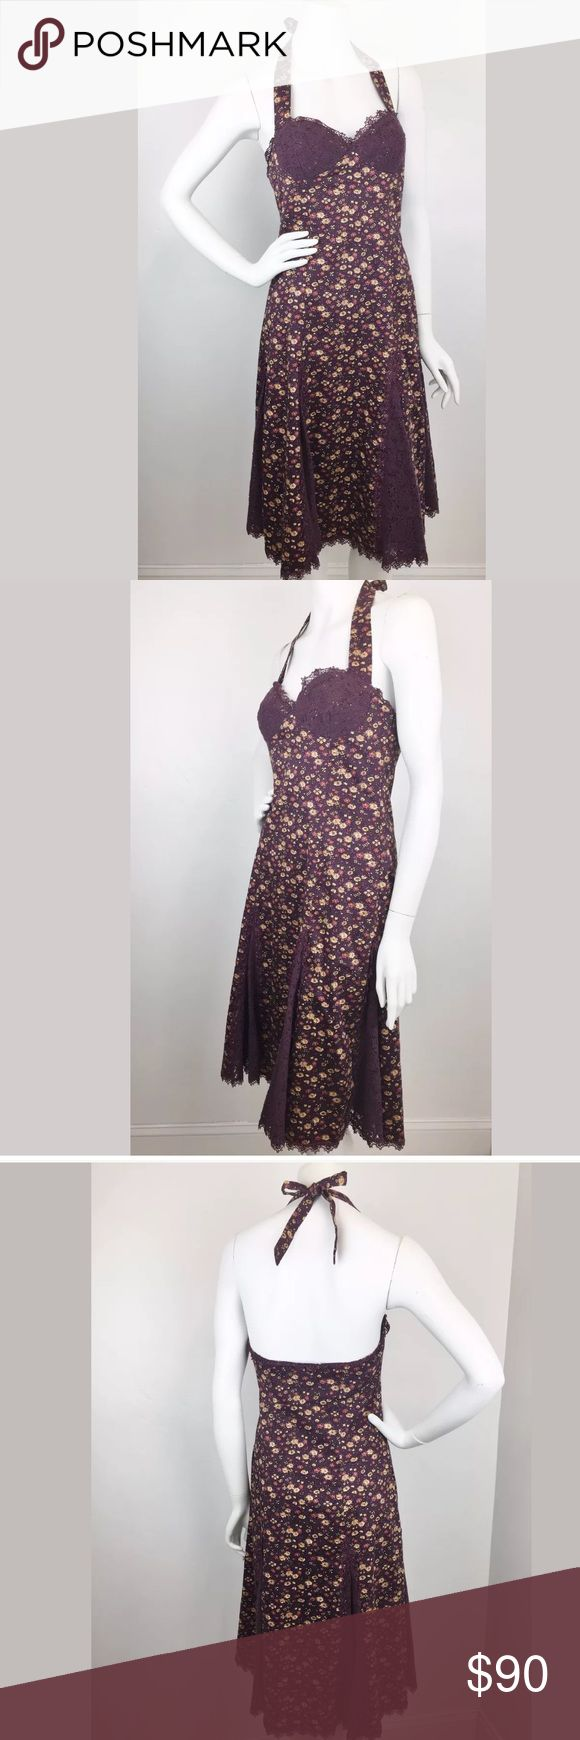 "Betsey Johnson Vintage 90's Floral Halter Dress Condition: Excellent; like new Fully lined Invisible side zip  Approximate measurements taken flat: Bust (underarm to underarm): 16"" Waist: 14.5"" Length (top of bodice to hem): 34"" Betsey Johnson Dresses Midi"